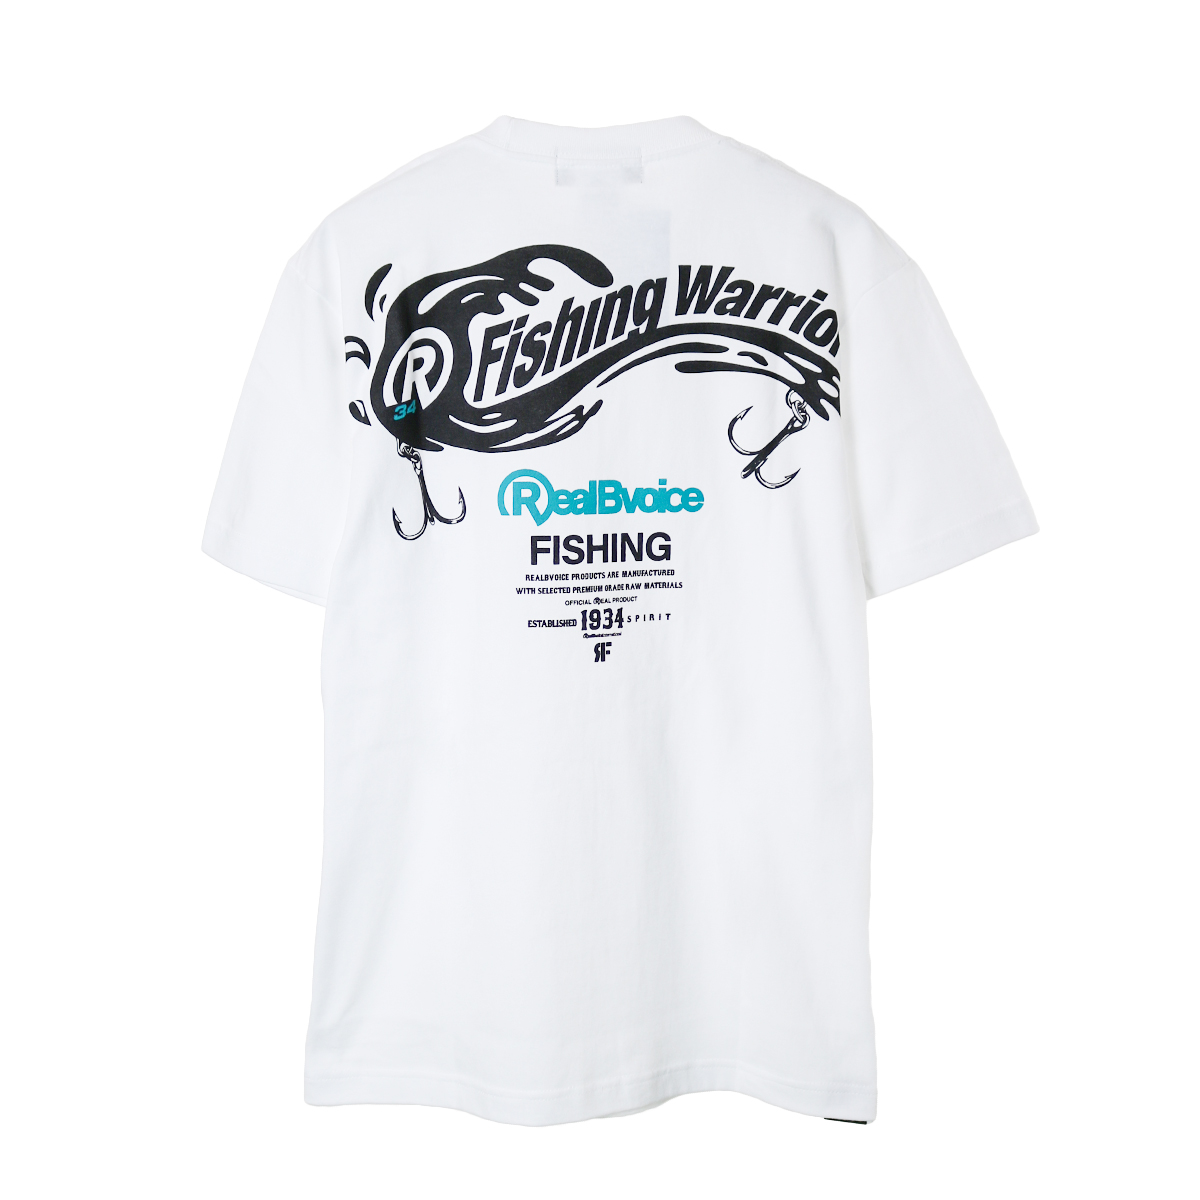 RBV FISHING WARRIOR T-SHIRT